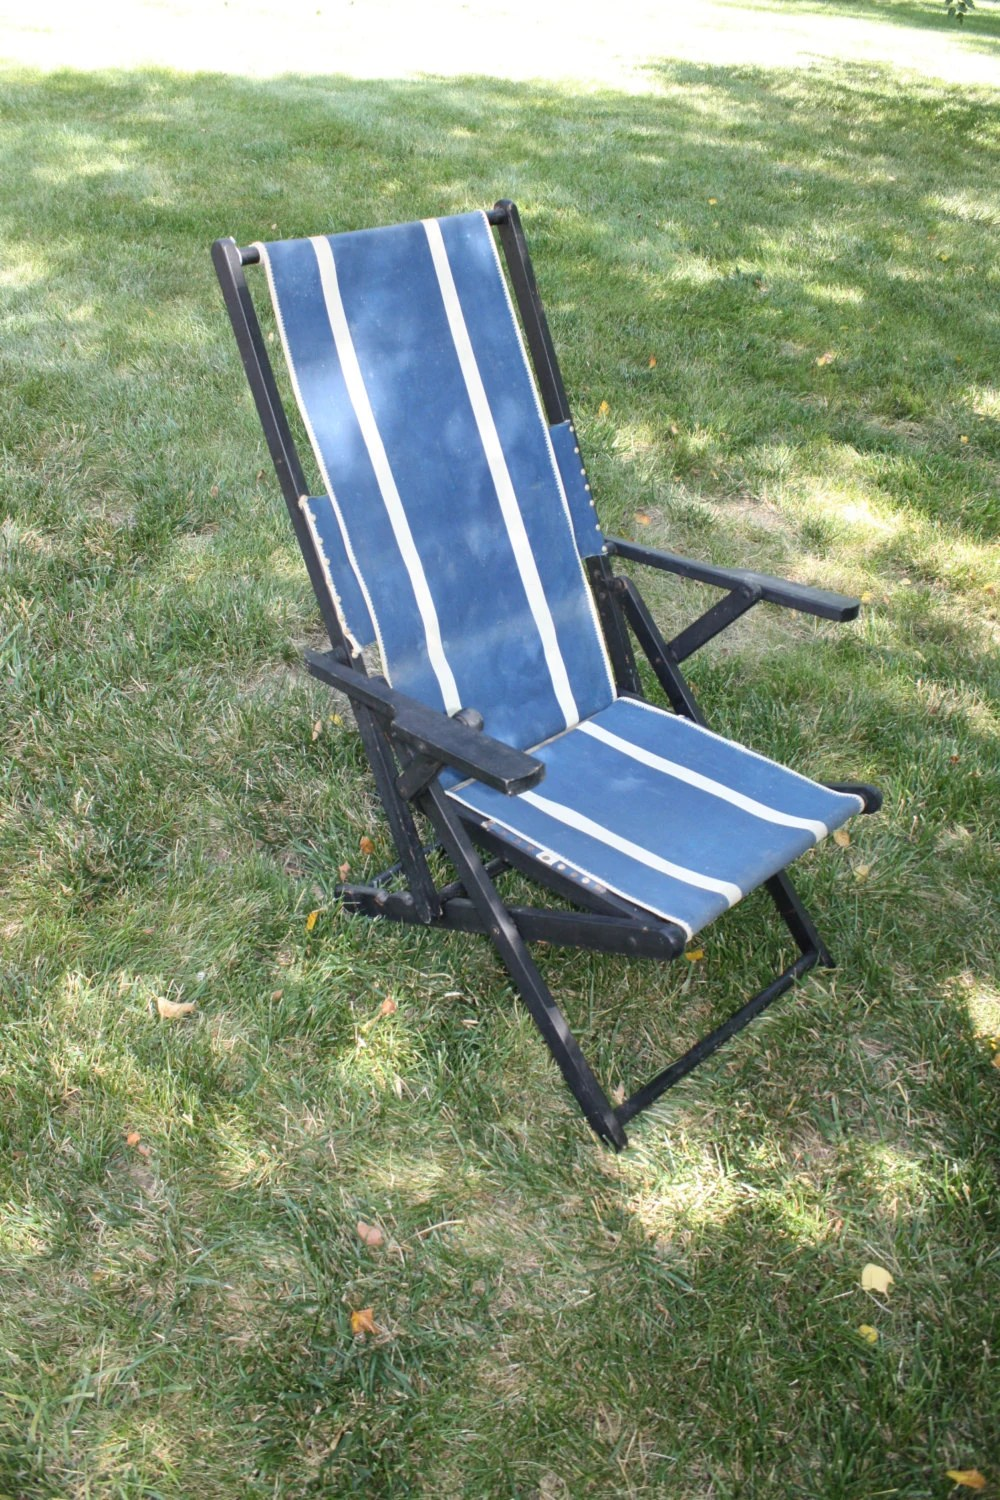 sailcloth beach chairs chair photo frame vintage canvas striped fabric classic green white black stripe etsy folding deck wood sling reclining blue mid century modern patio furniture travel trailer glamping